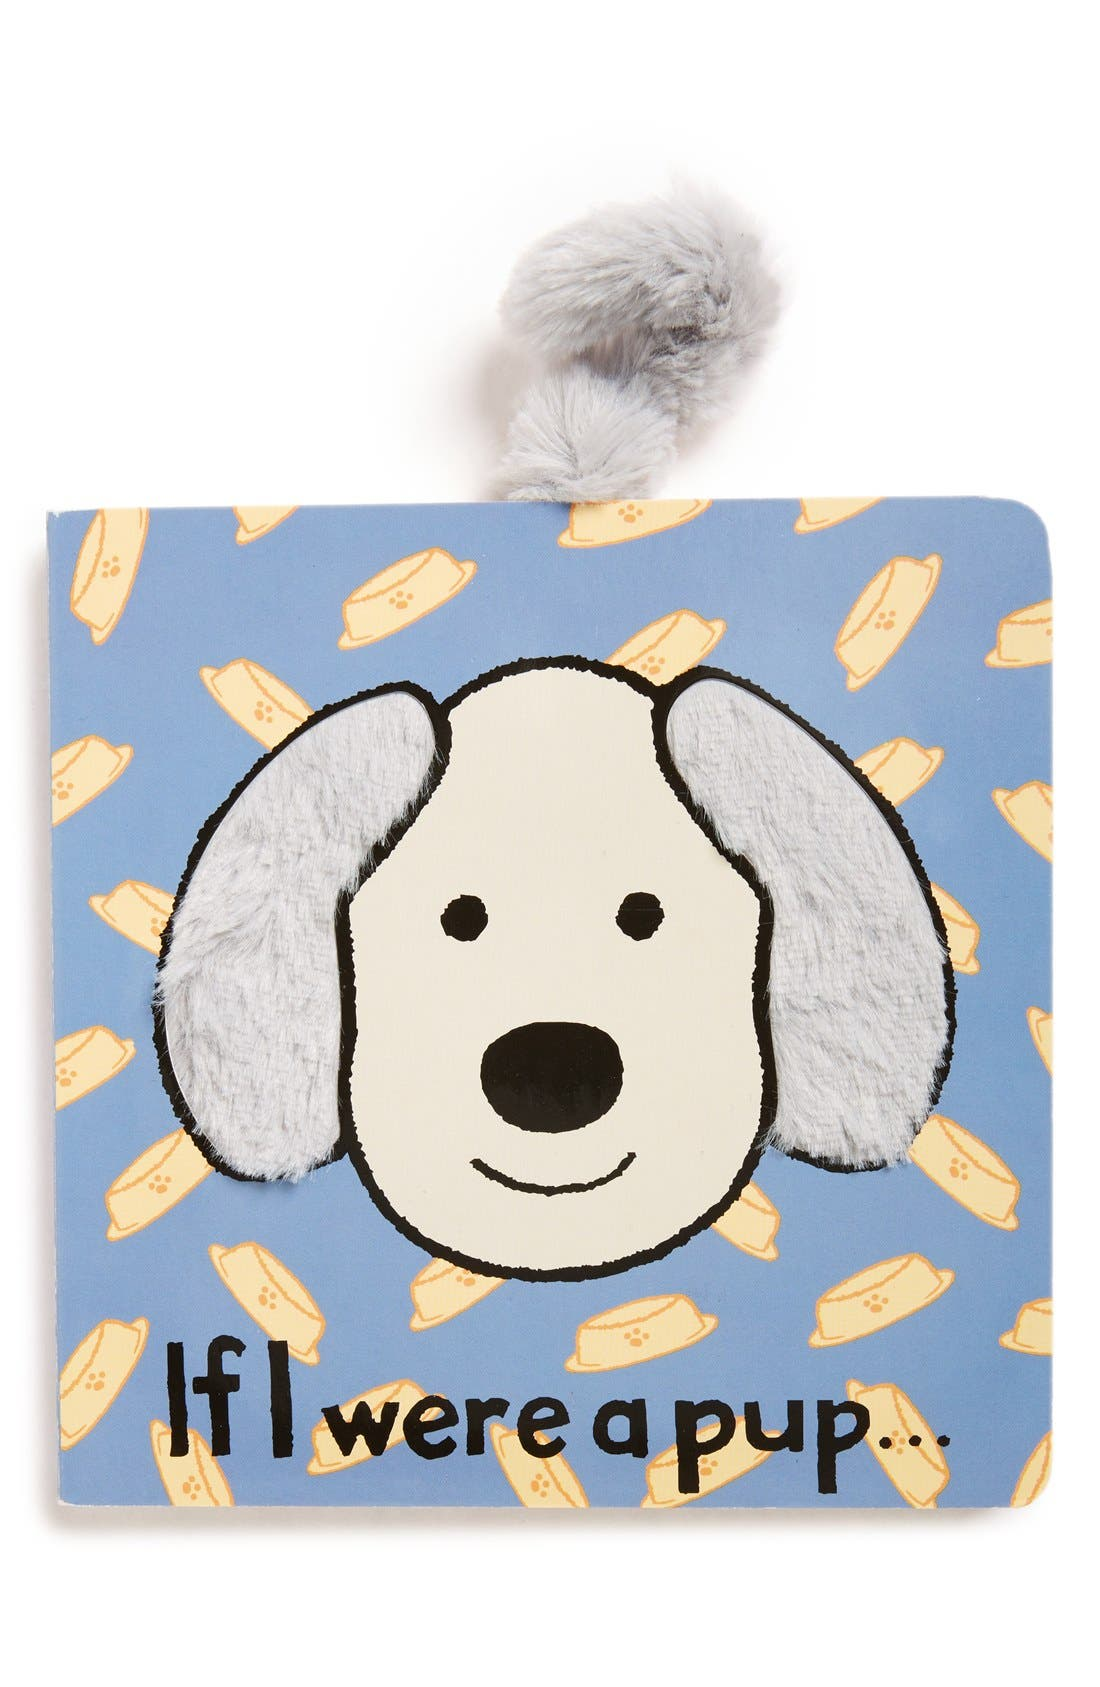 'If I Were a Pup' Board Book,                             Main thumbnail 1, color,                             240